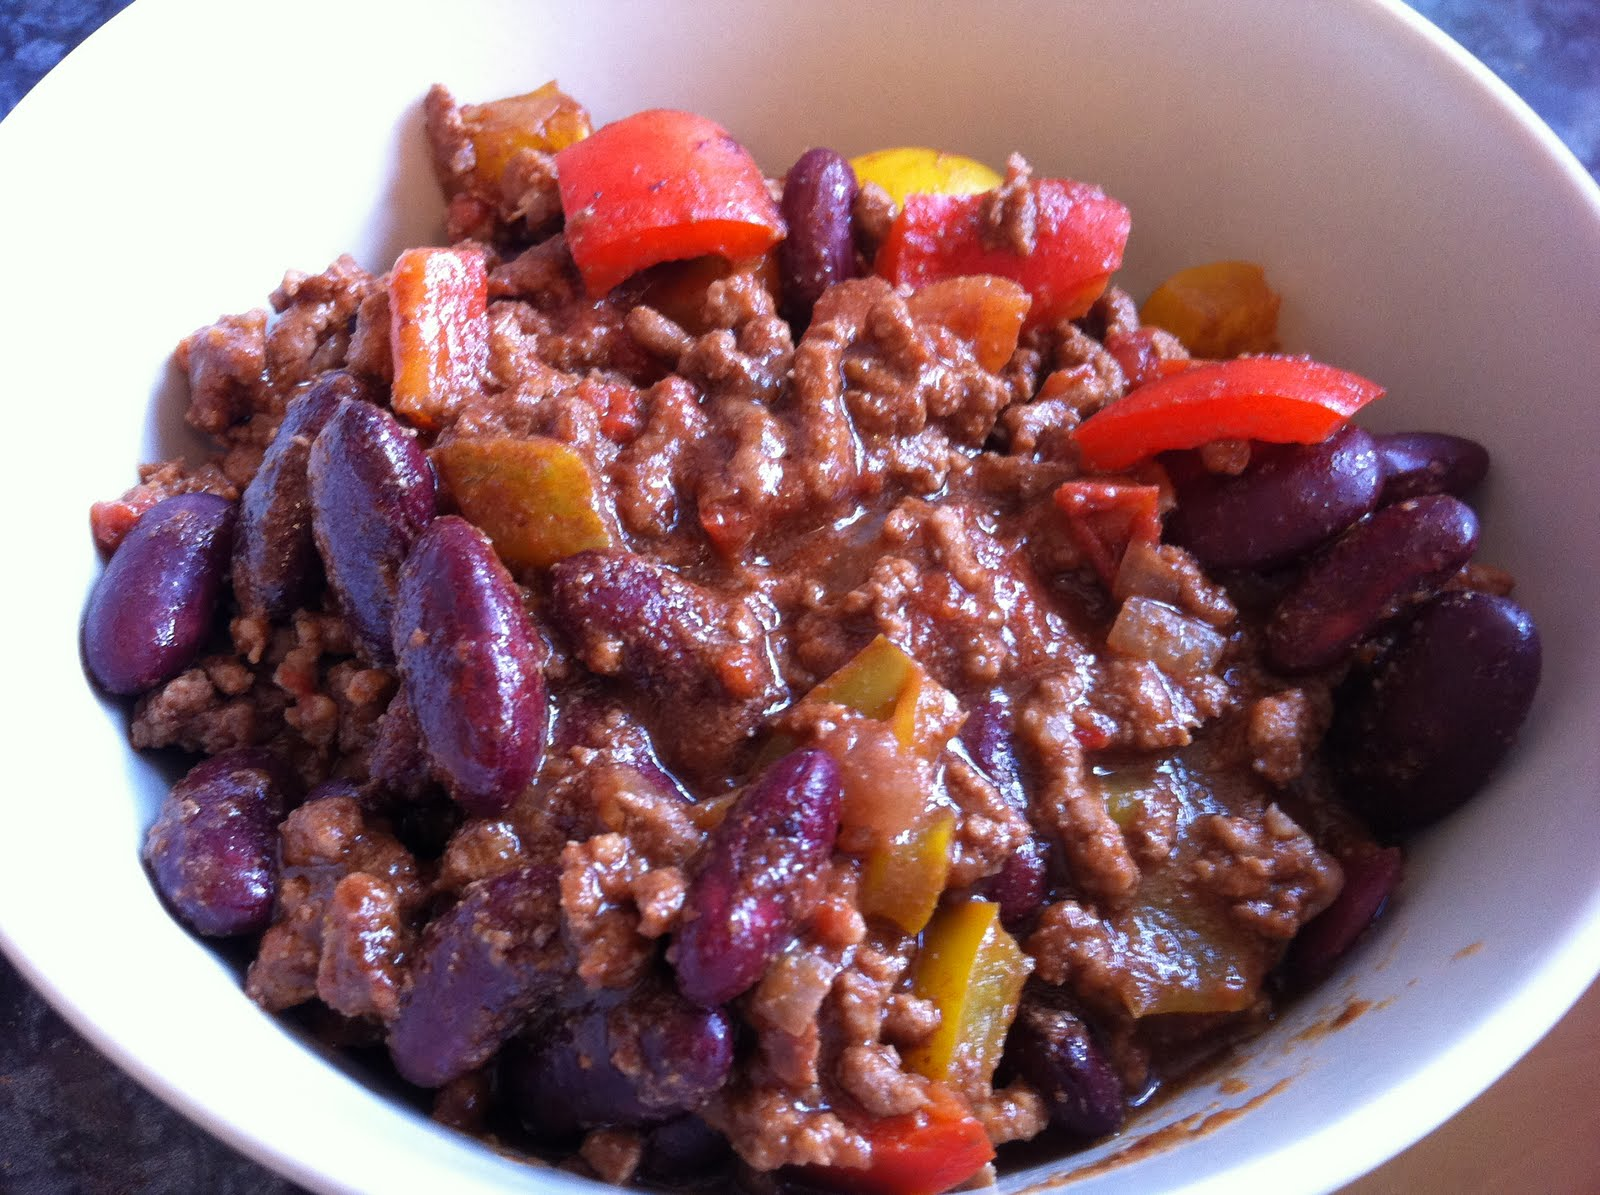 Tasting happiness chocolate chilli con carne for Adding chocolate to chilli con carne